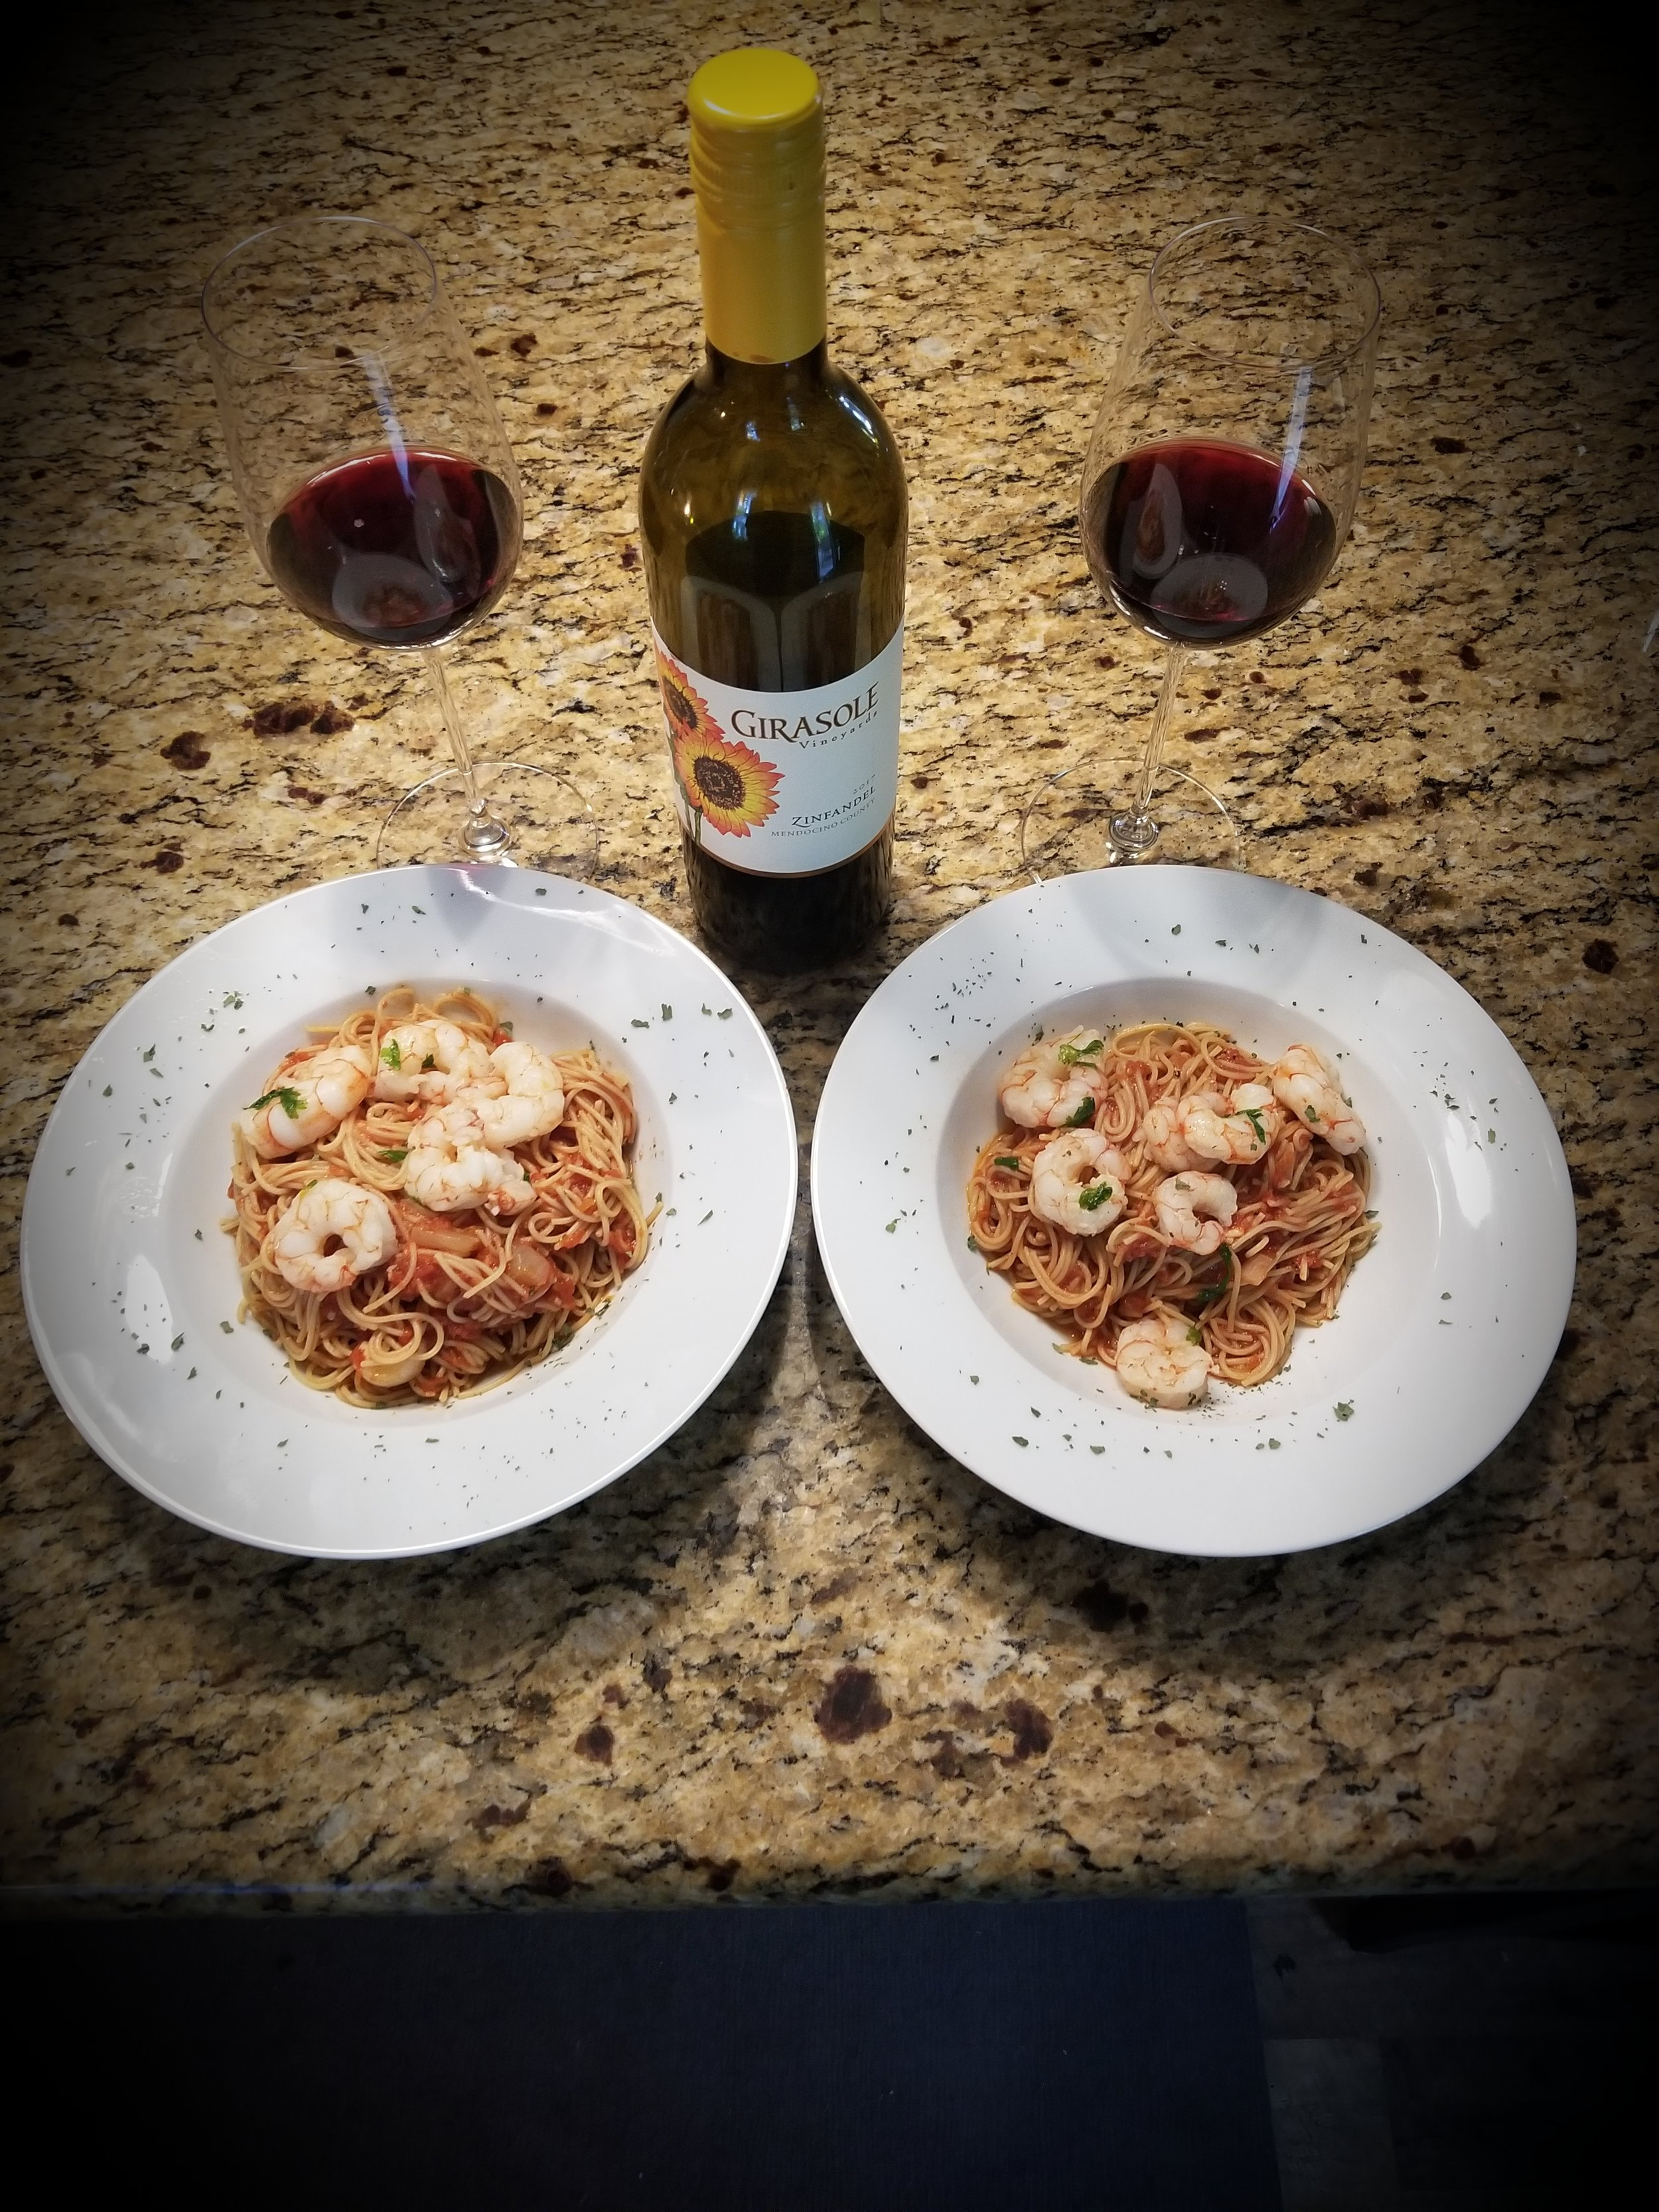 Chipotle Shrimp Sauce with Pasta paired with Girasole Zinfandel